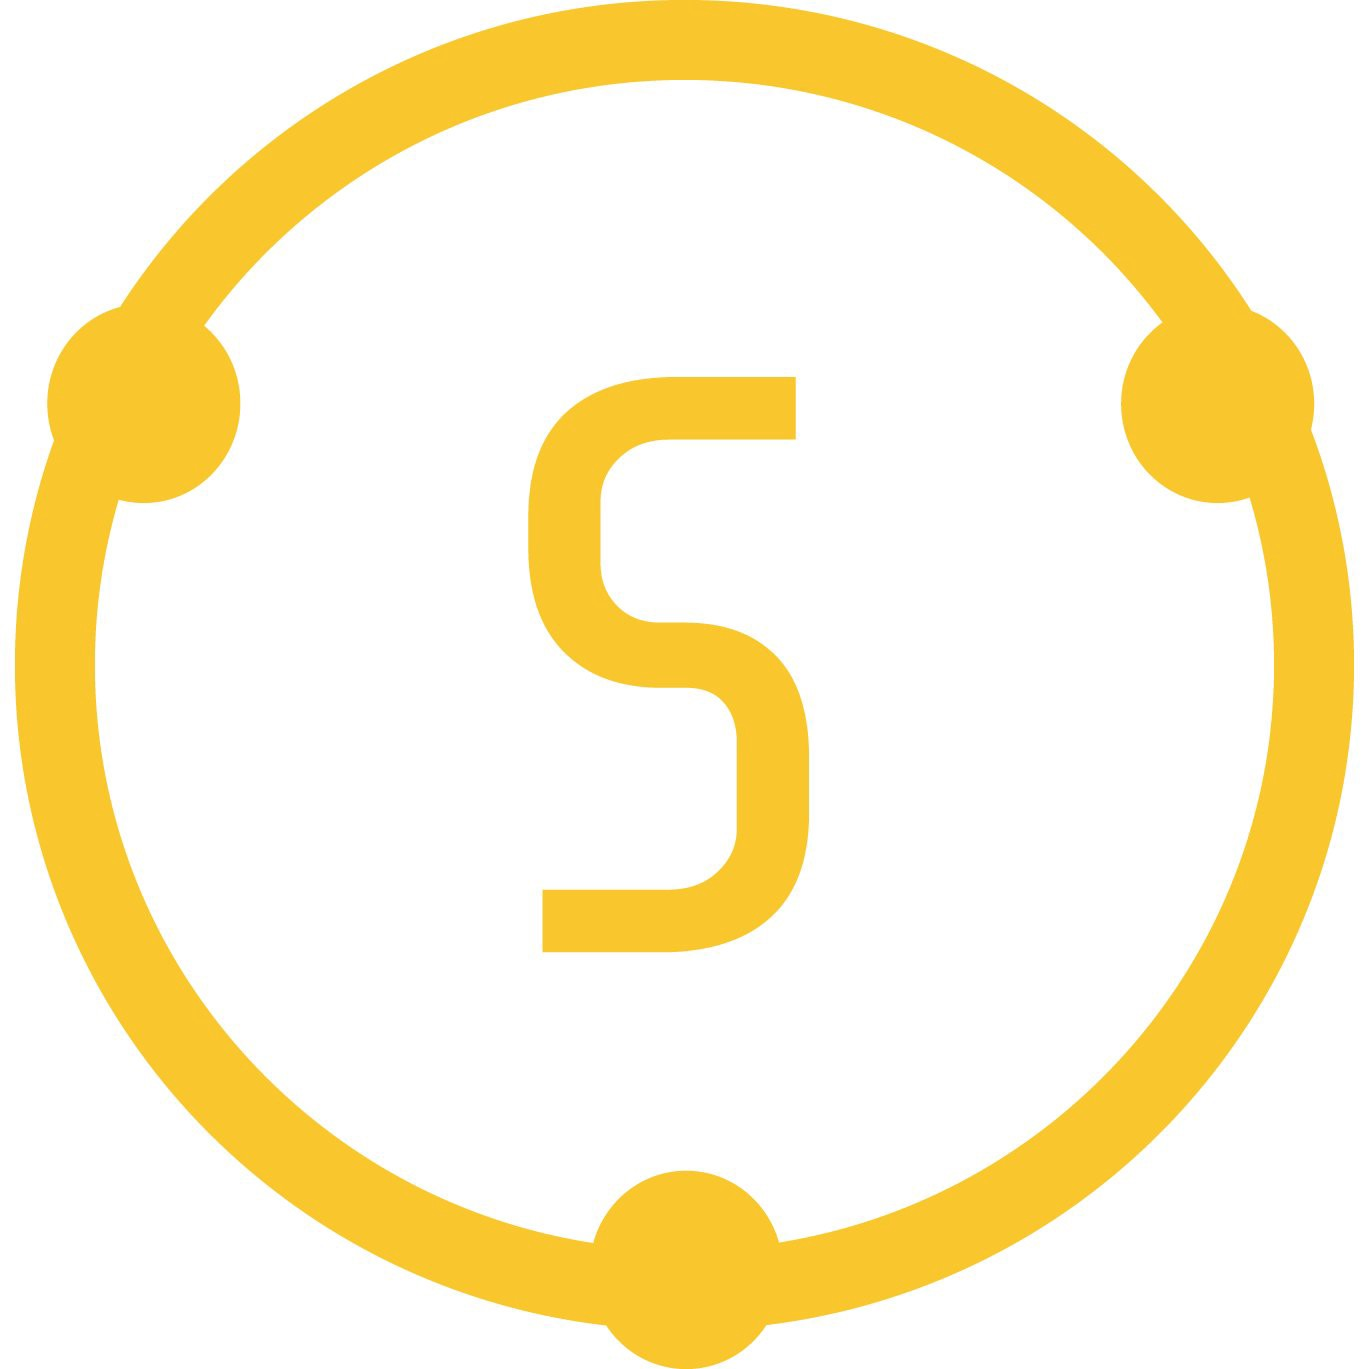 Steeltrace improves quality tracing of steel by using blockchain that is why steeltrace wants to replace the paper forms by a blockchain solution so the whole quality tracing process will be open and for everyone to see biocorpaavc Choice Image